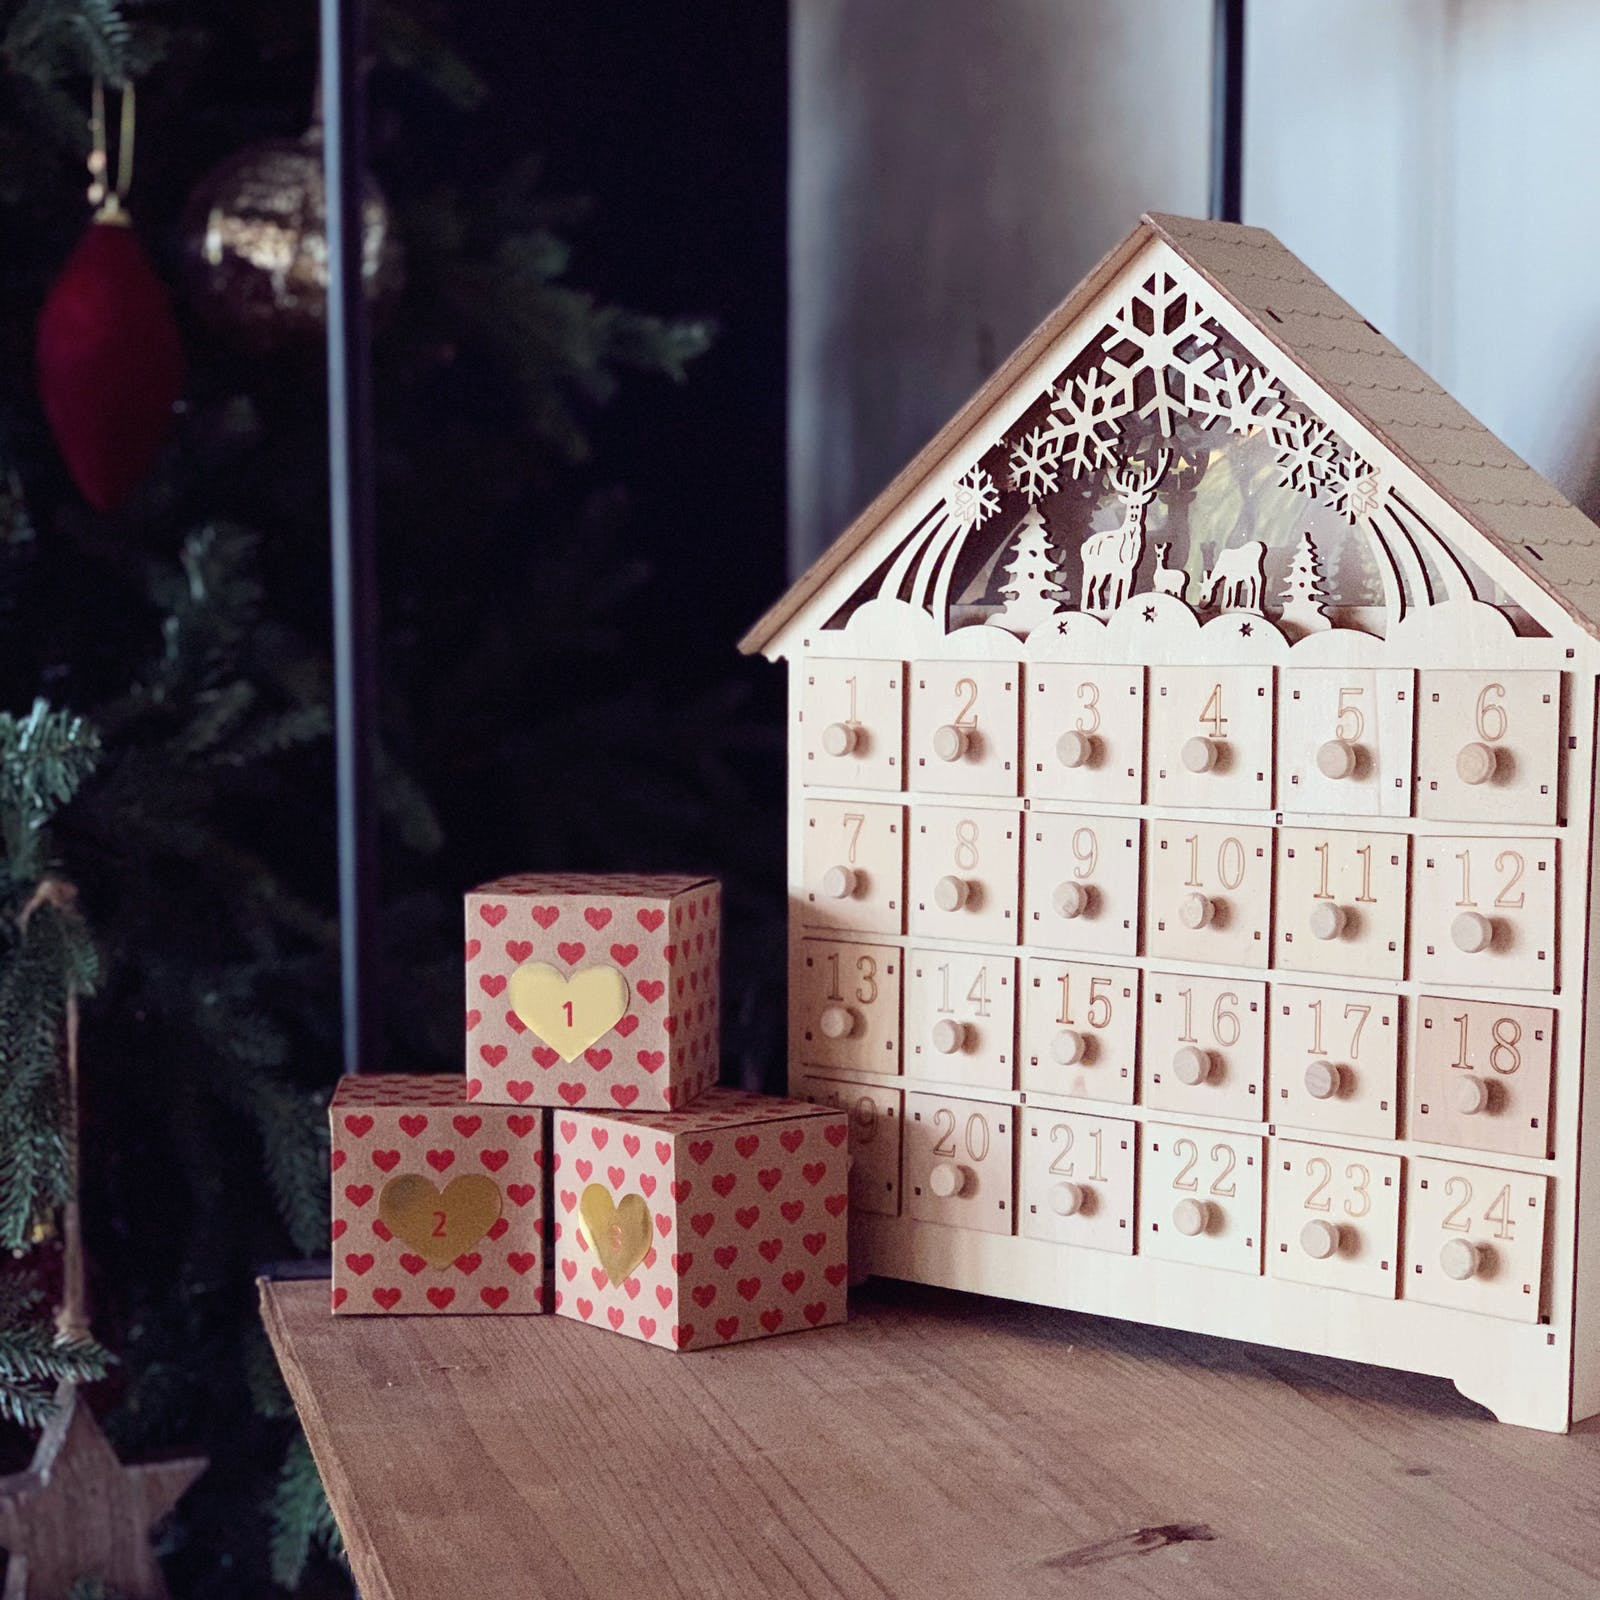 Wooden advent calendar next to Christmas wrapped gifts